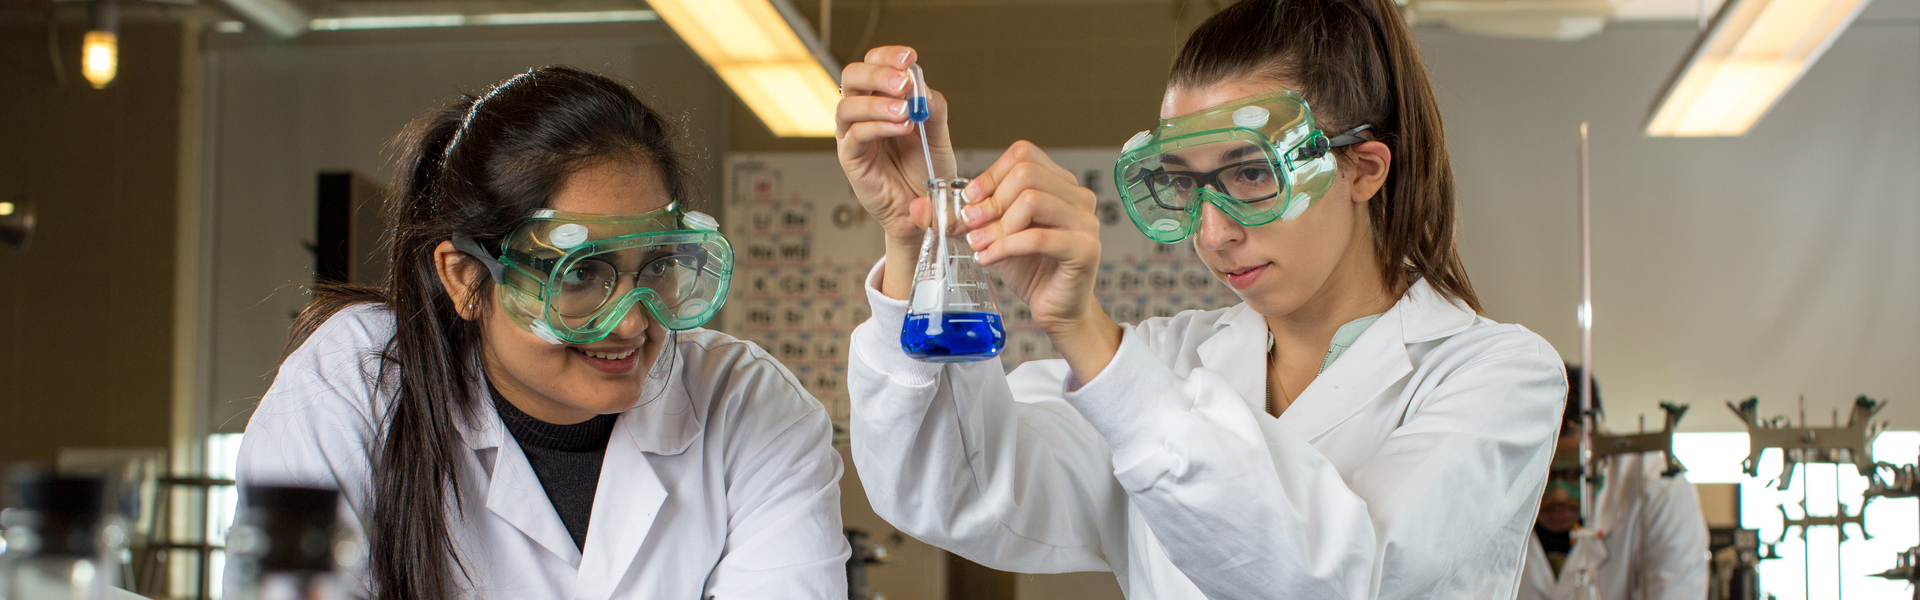 Students in a lab working with chemicals